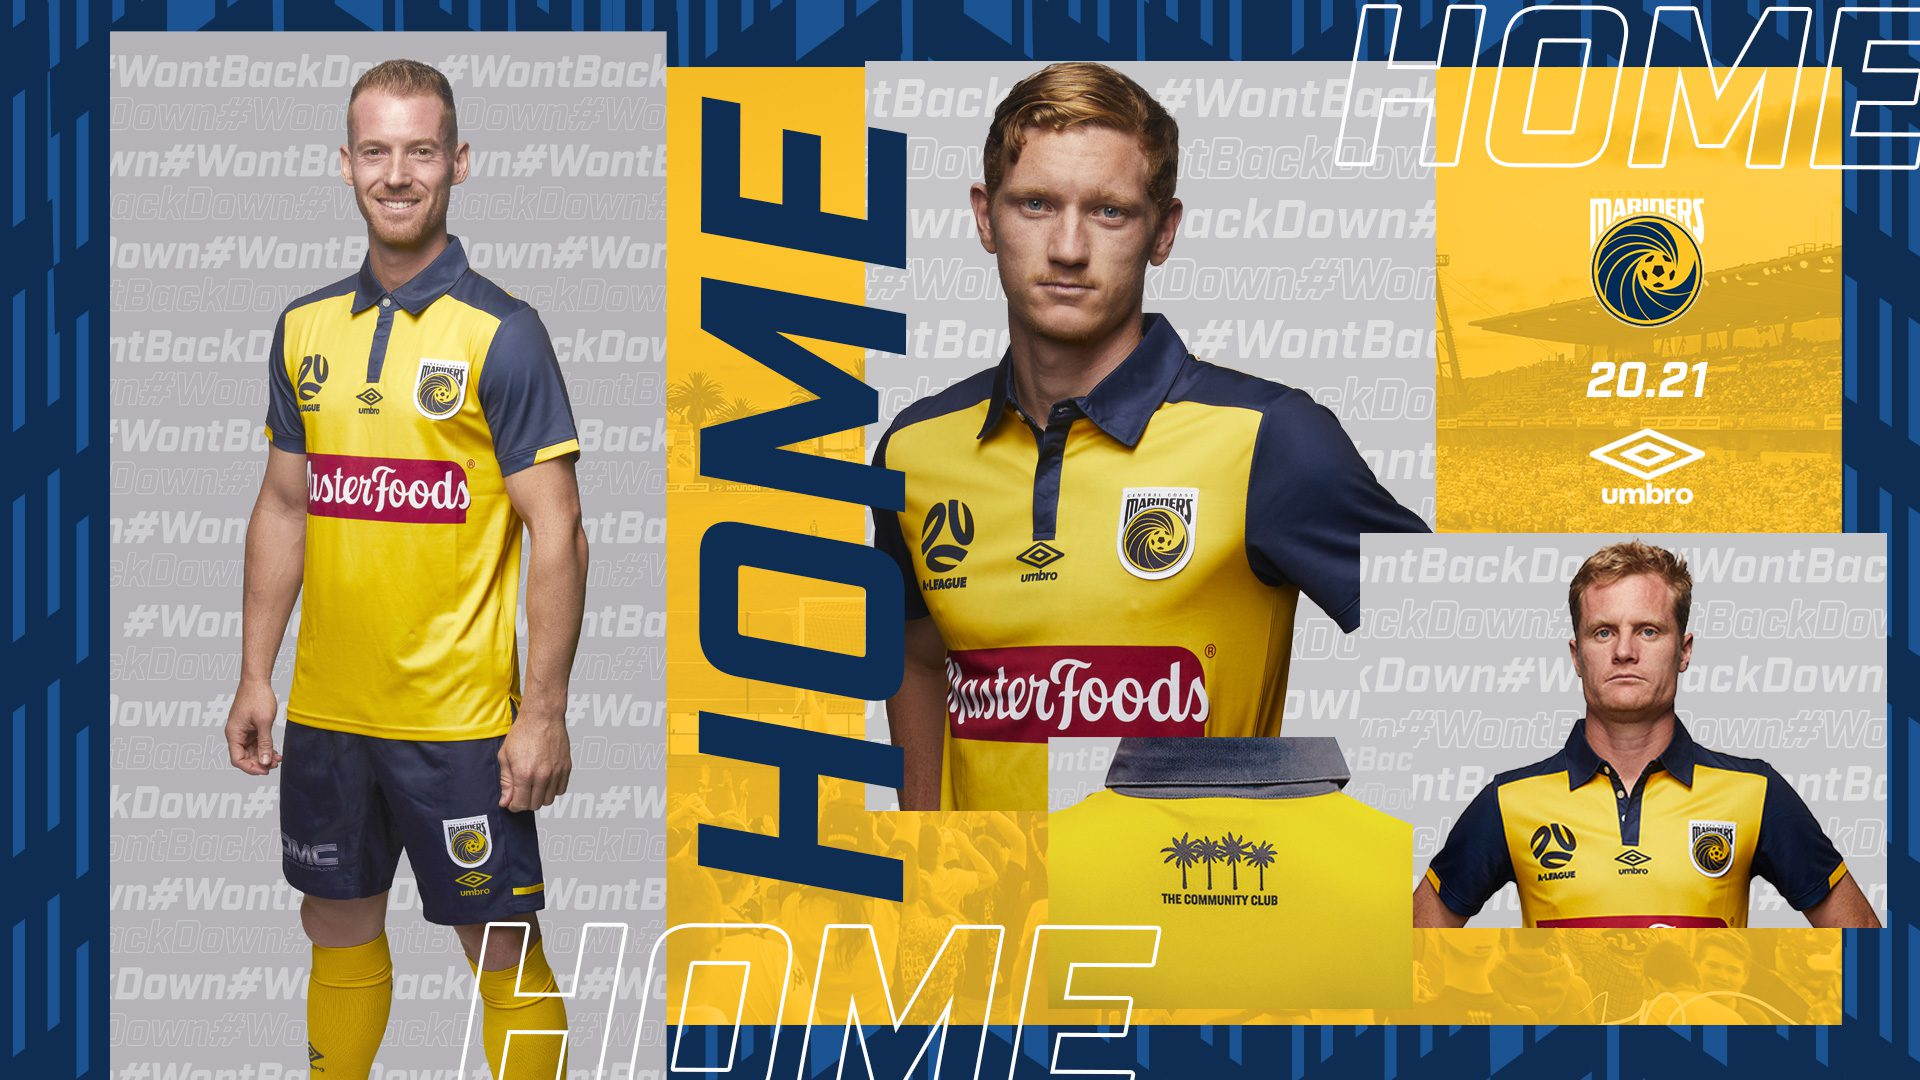 Central Coast Mariners 20-21 uniform